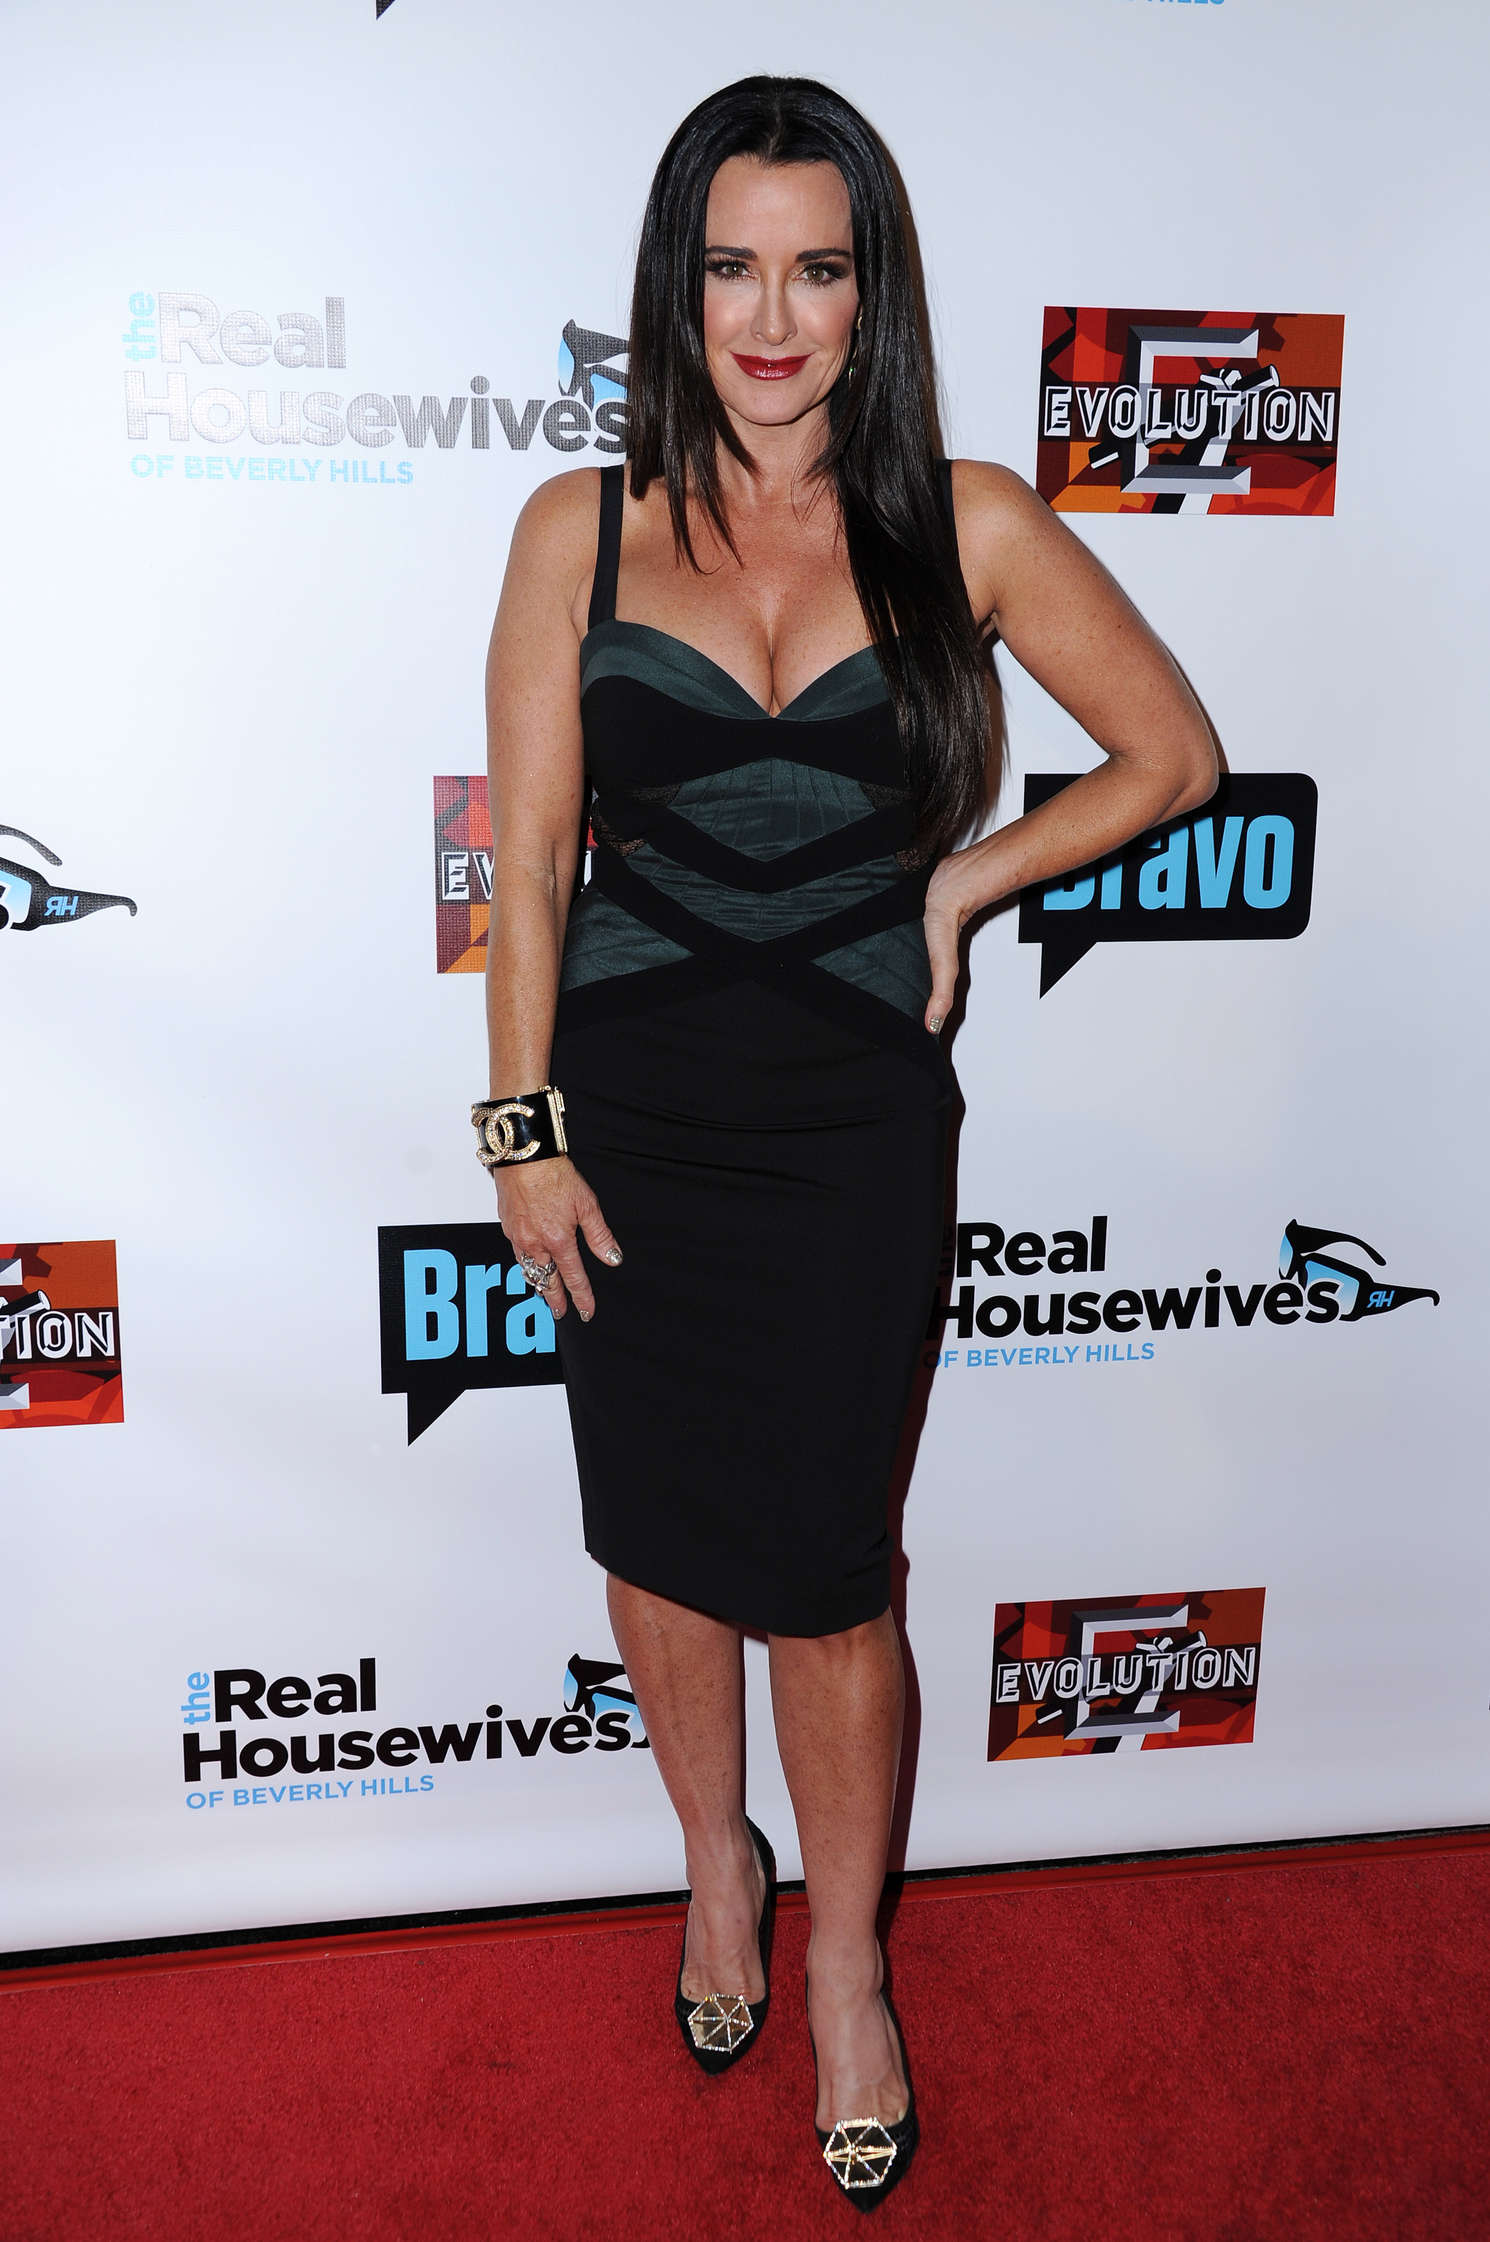 Kyle Richards The Real Housewives Of Beverly Hills Season Premiere Party in Hollywood